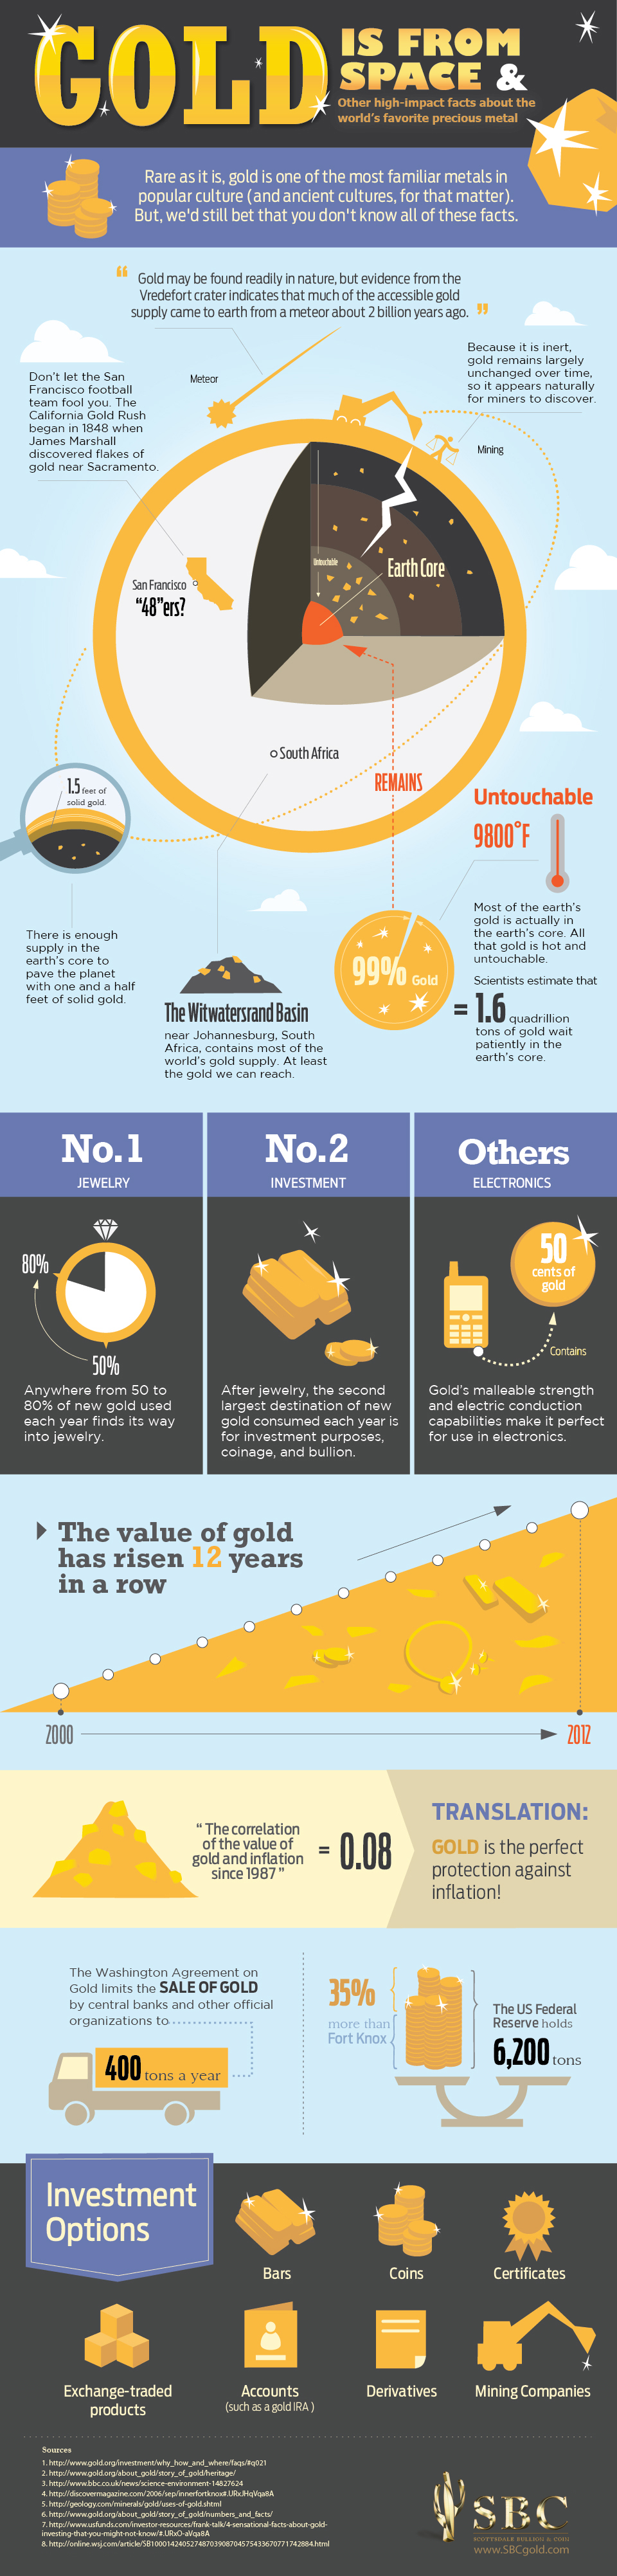 Gold is From Space and Other High Impact Facts About Gold